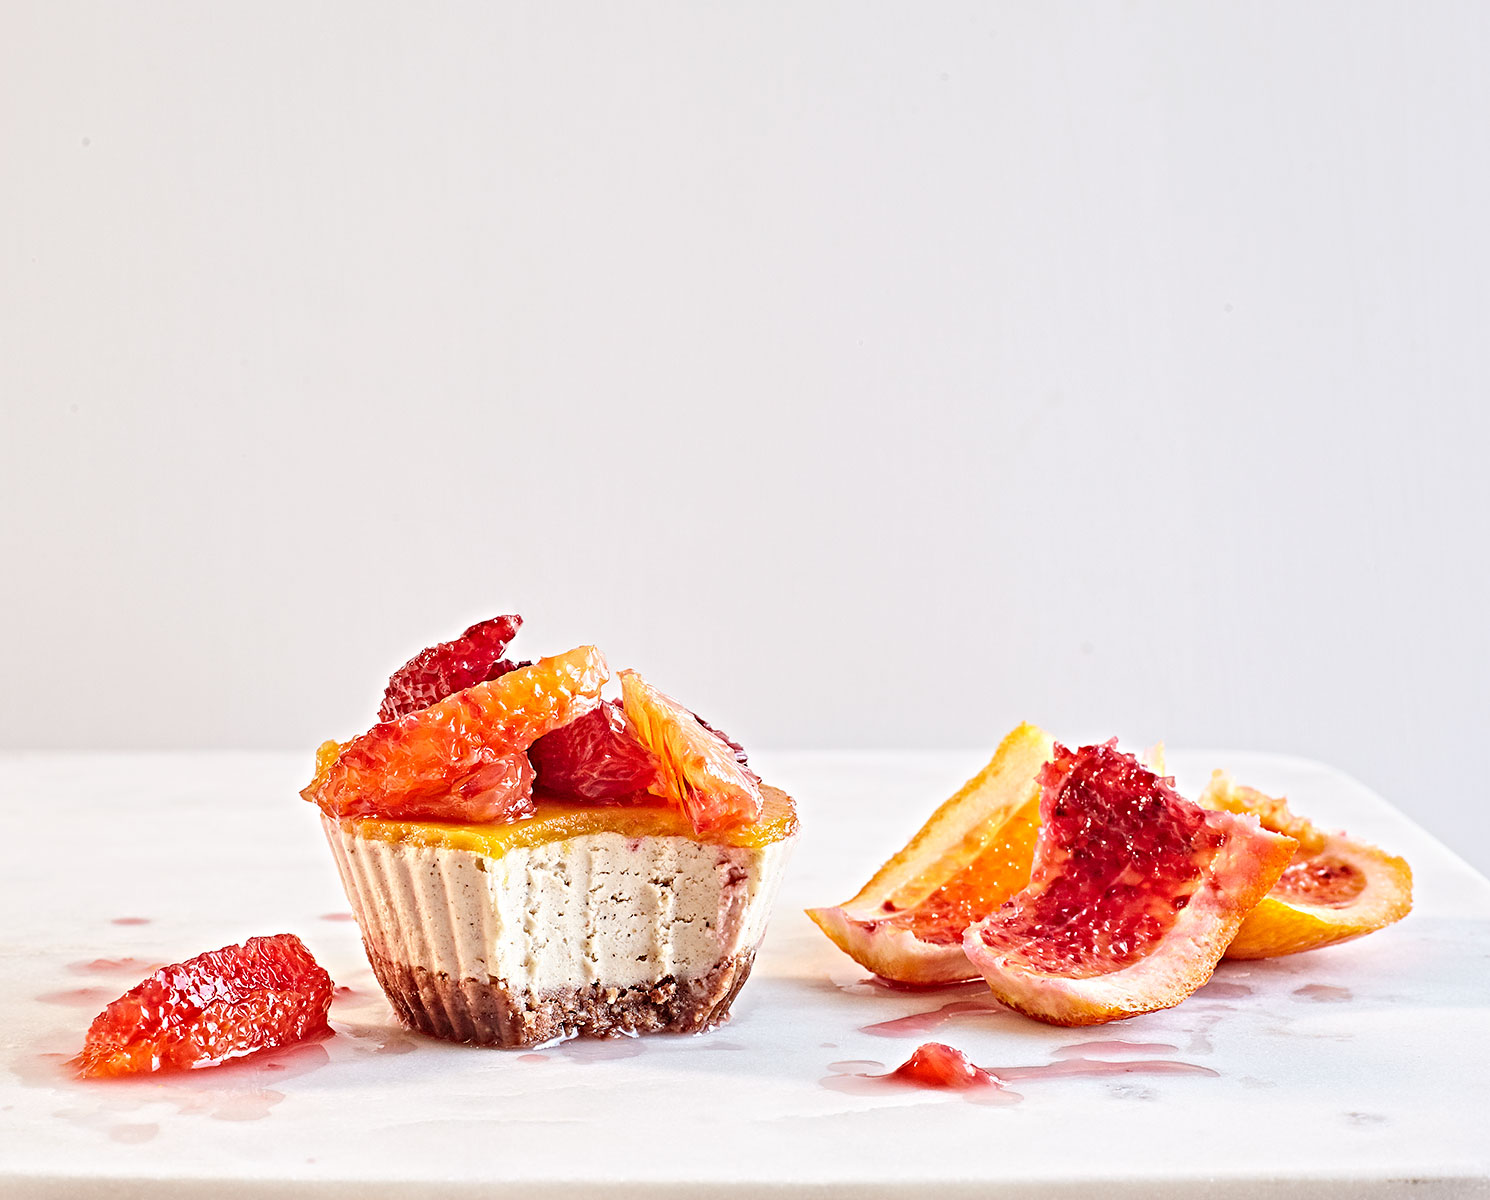 Whole30 grain-free and dairy-free vegan mini cheesecakes with blood orange segments..